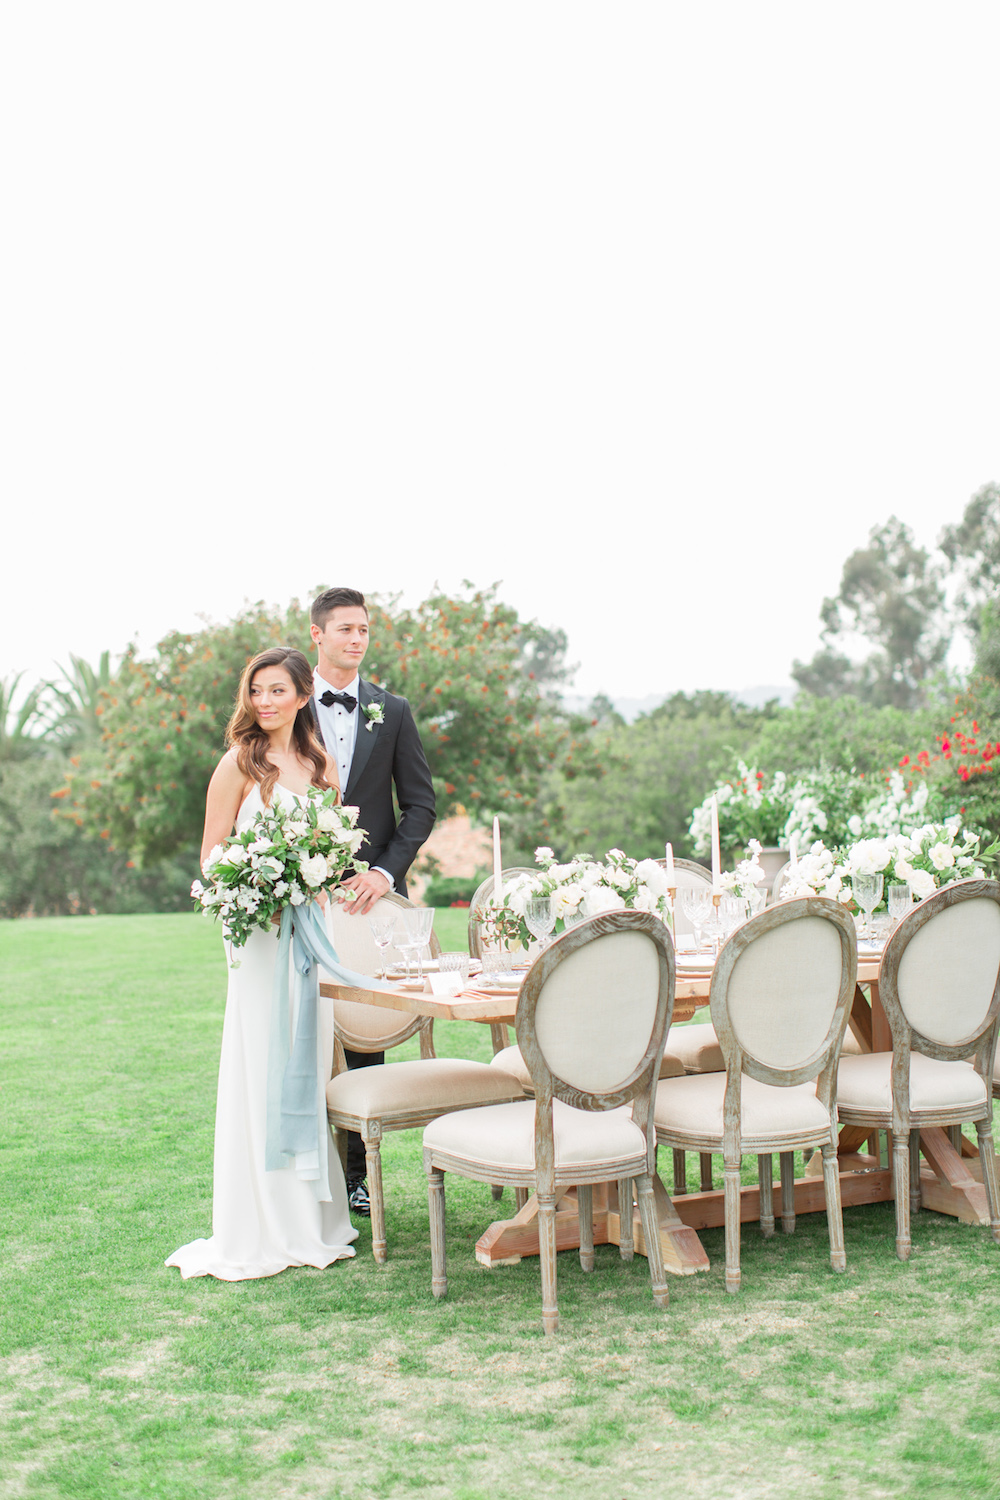 Bride & groom portrait with bouquet| Rancho Valencia Weddings | Rancho Santa Fe | Compass Floral | Wedding Florist in San Diego and Southern California | Cavin Elizabeth Photography